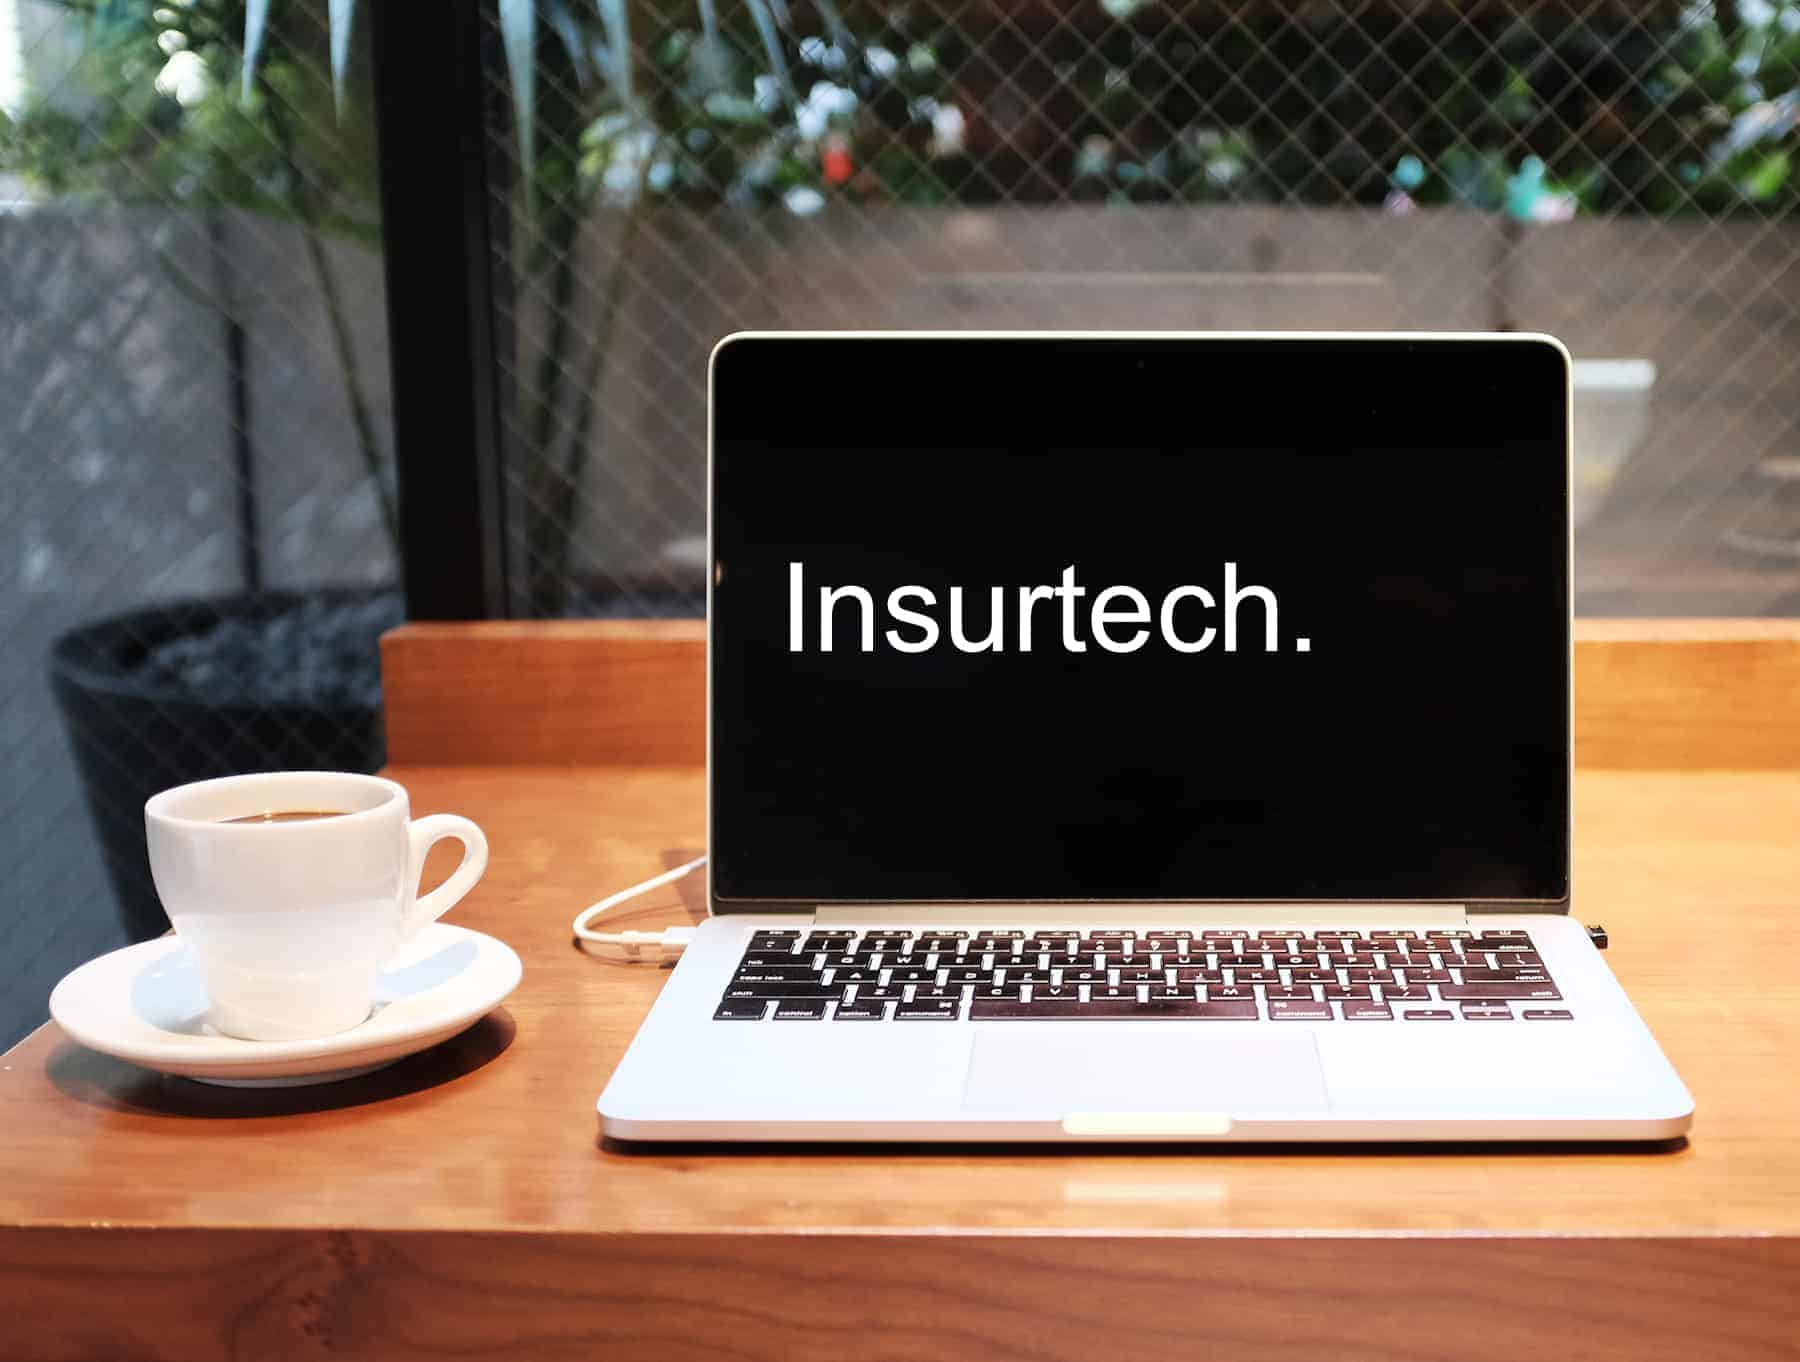 UK Insurtech Dinghy Appoints Dorian Zanker As New CEO